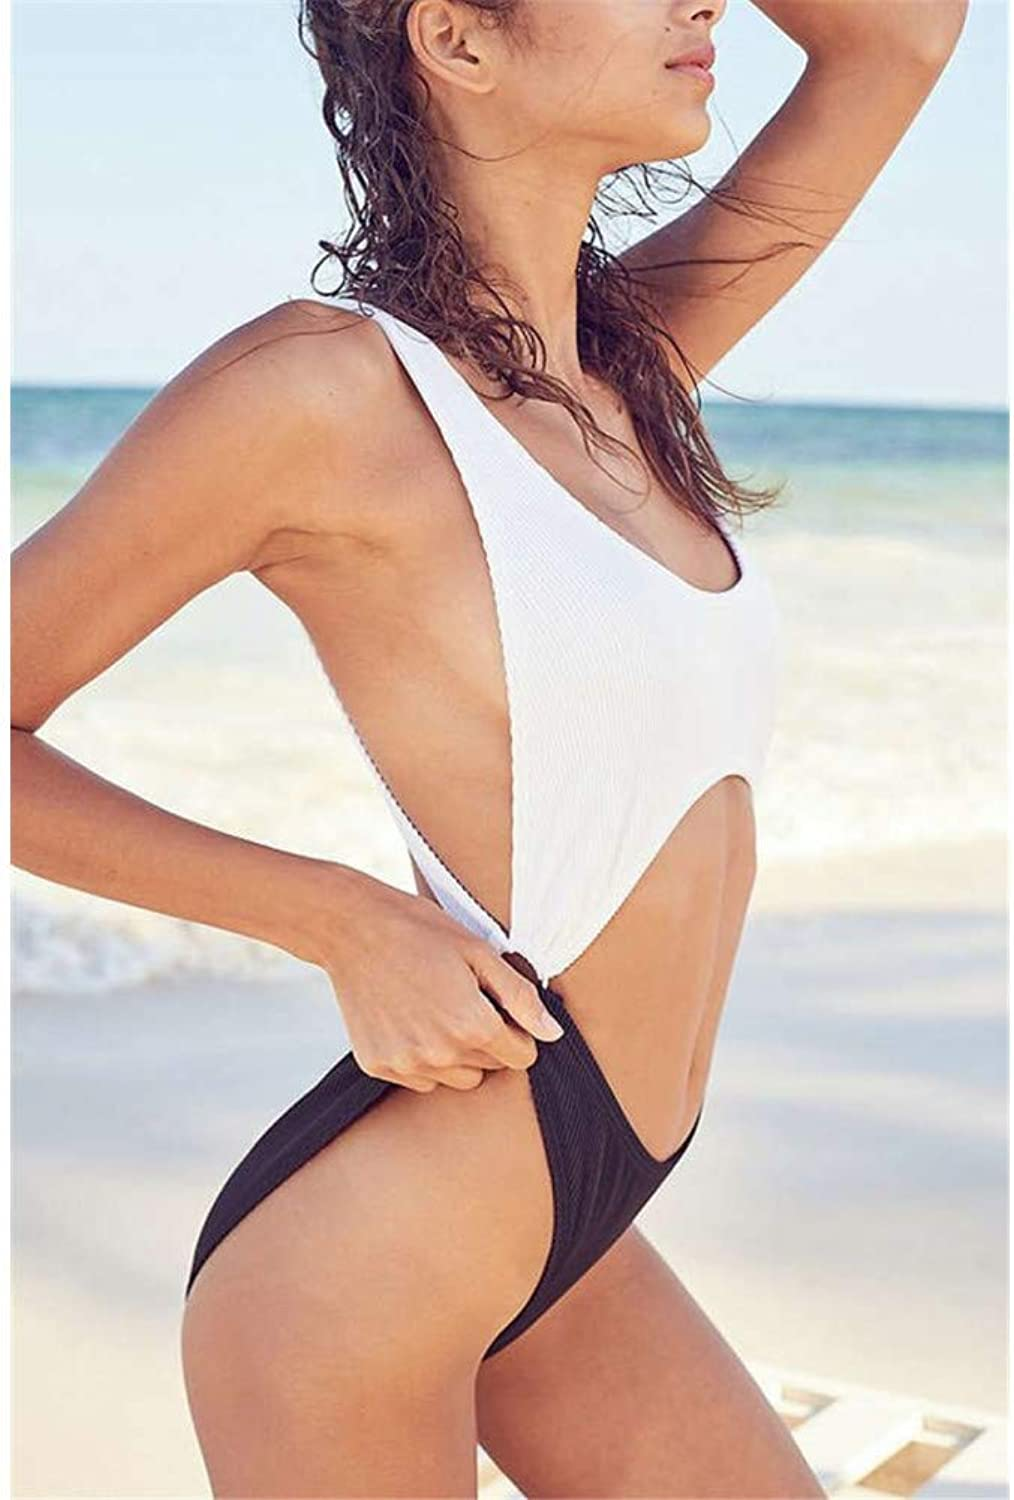 SHENGYUNPIO 2019 One Piece Swimsuit Solid damen Swimwear Halter Bathing Bathing Bathing Suit Beach Wear Patchwork Bodysuit Piece Swimwear B07PB2QX3Z  Flagship-Store 34a788